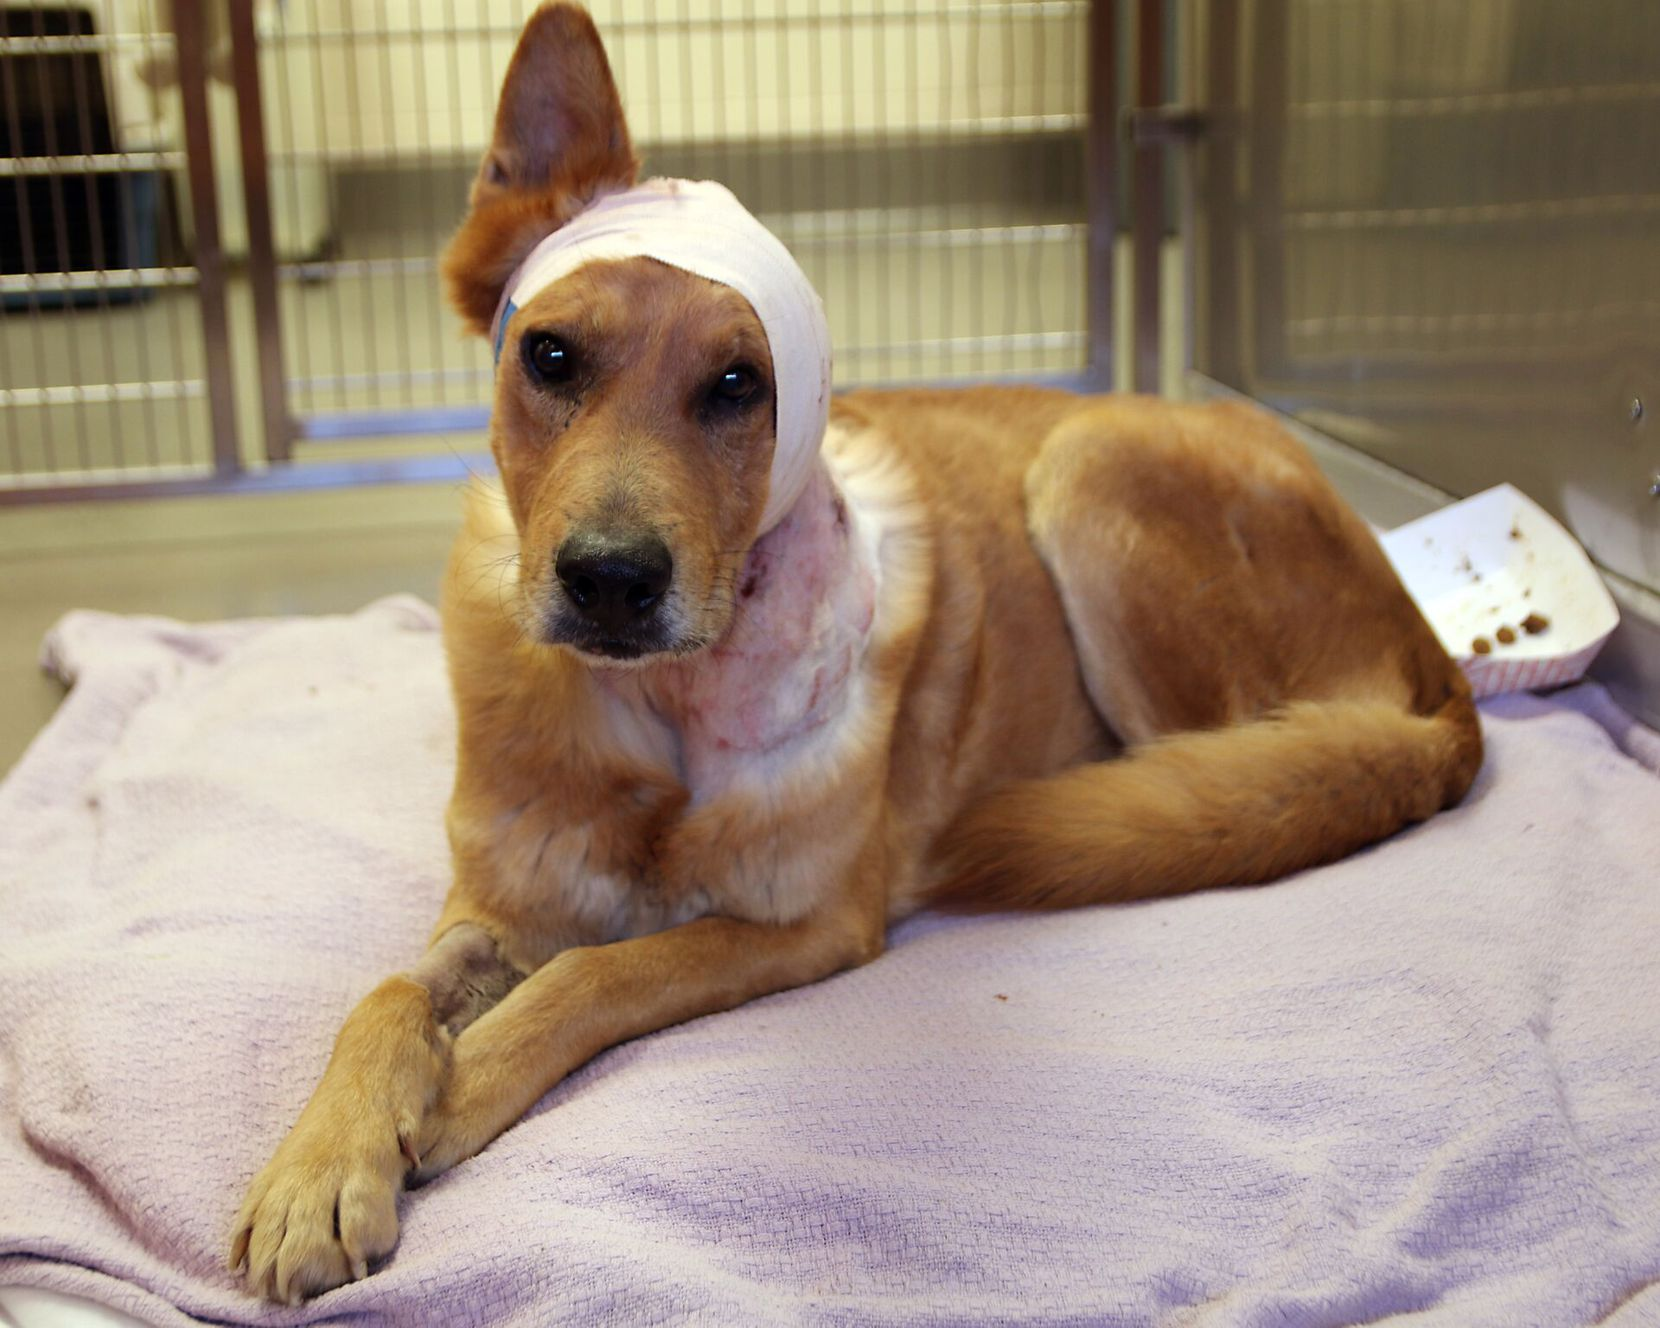 Lucky, an 8-year-old dog, was found roaming South Dallas on Saturday. Dallas police's animal-cruelty detectives have an open investigation regarding Lucky, who had his ear removed in surgery due to his severe wounds.